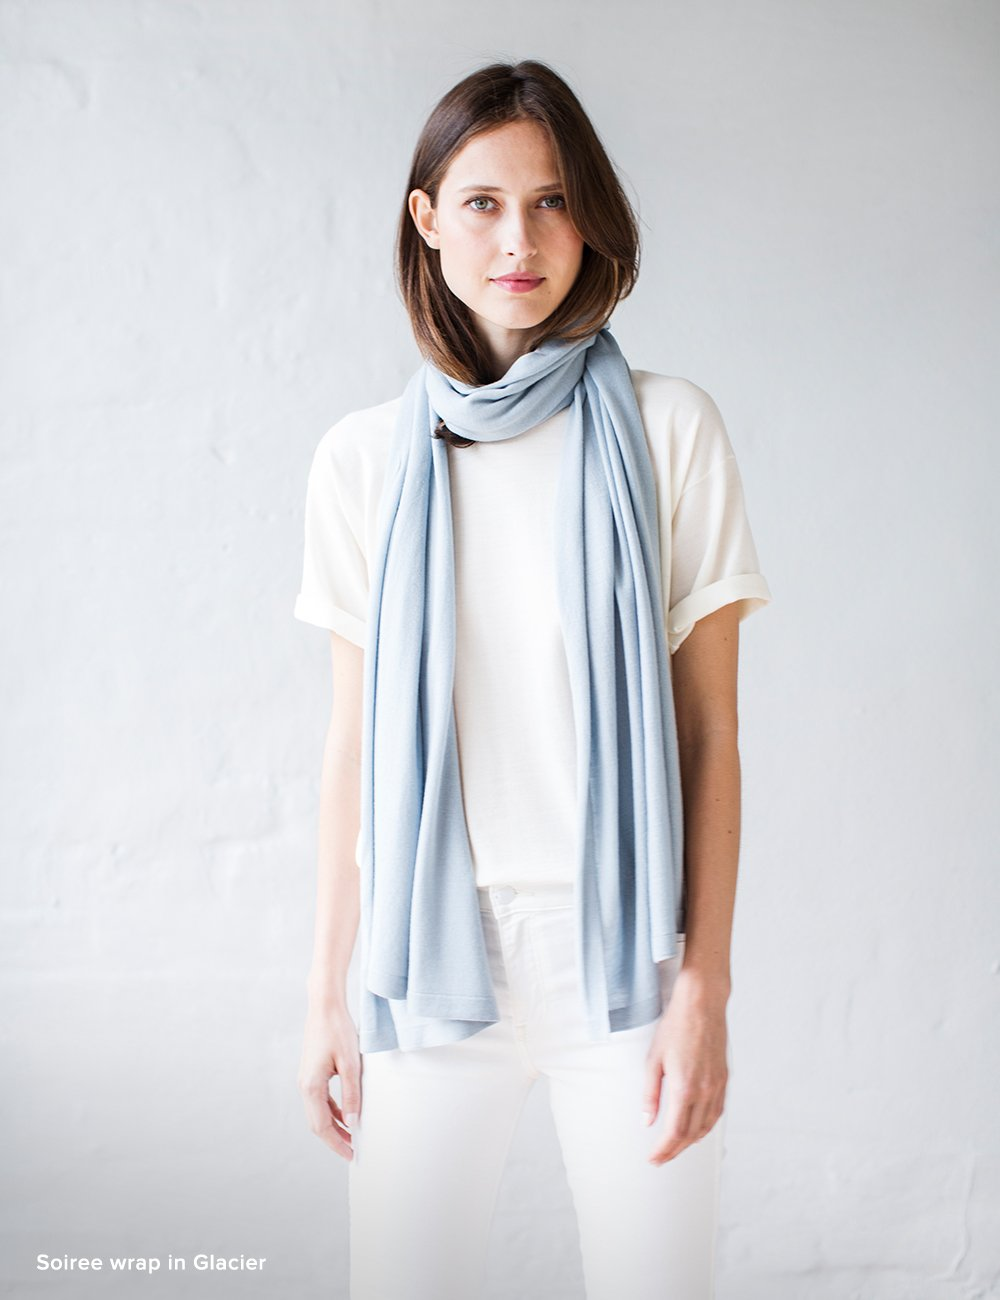 Australian Superfine Merino Wrap Travel Size - Glacier